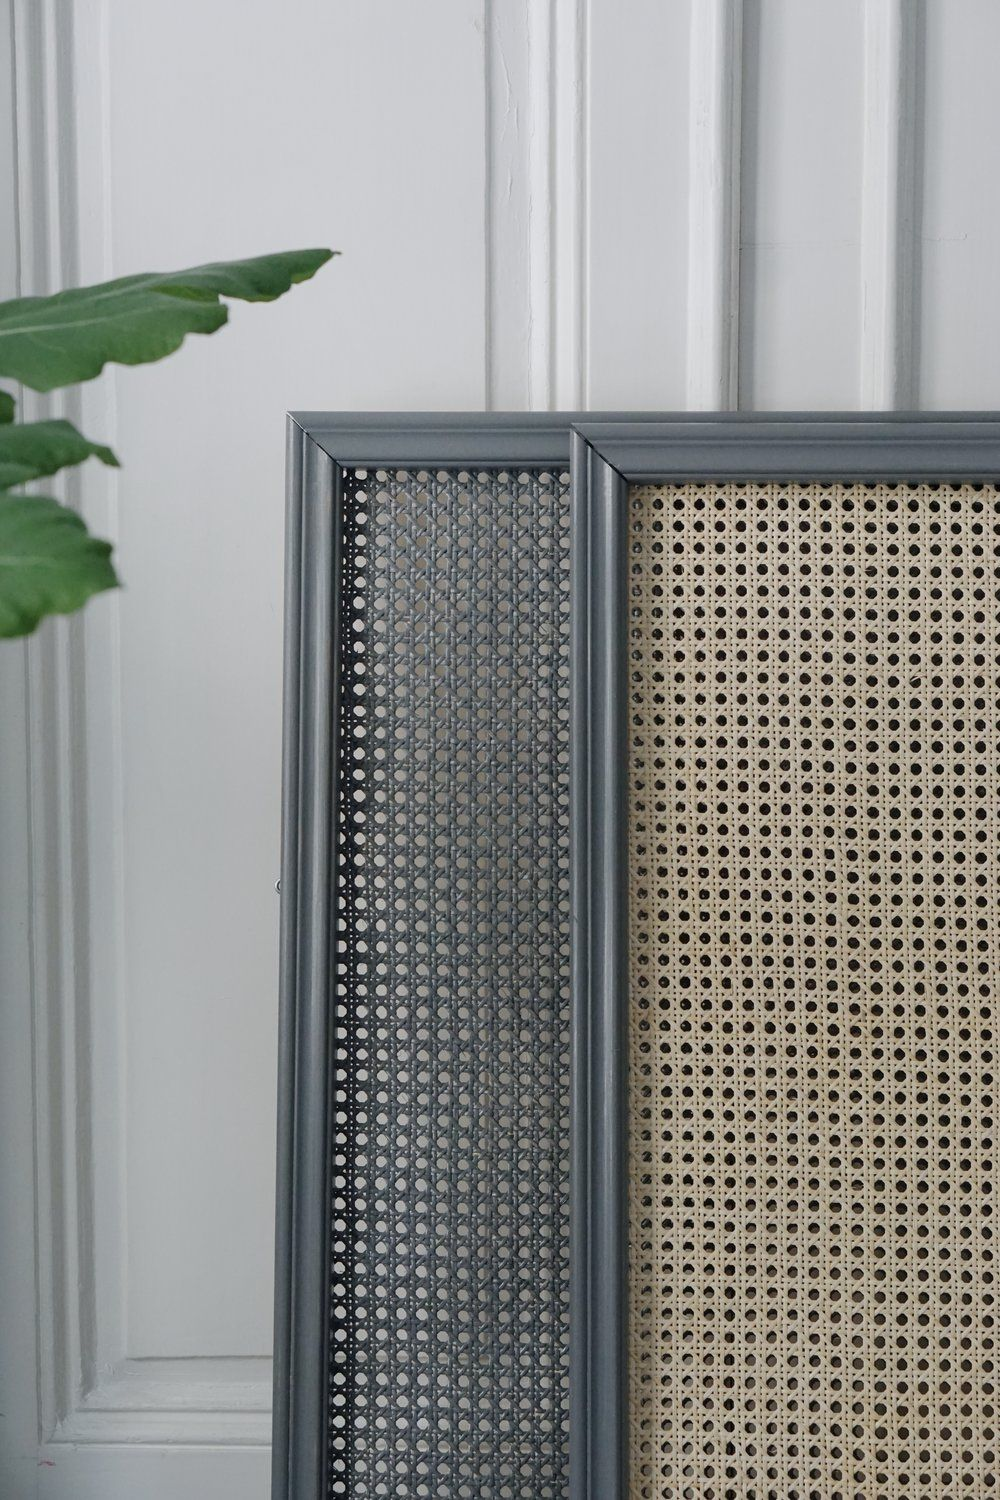 DIY rattan heater covers (element-skydd), read the full guide and